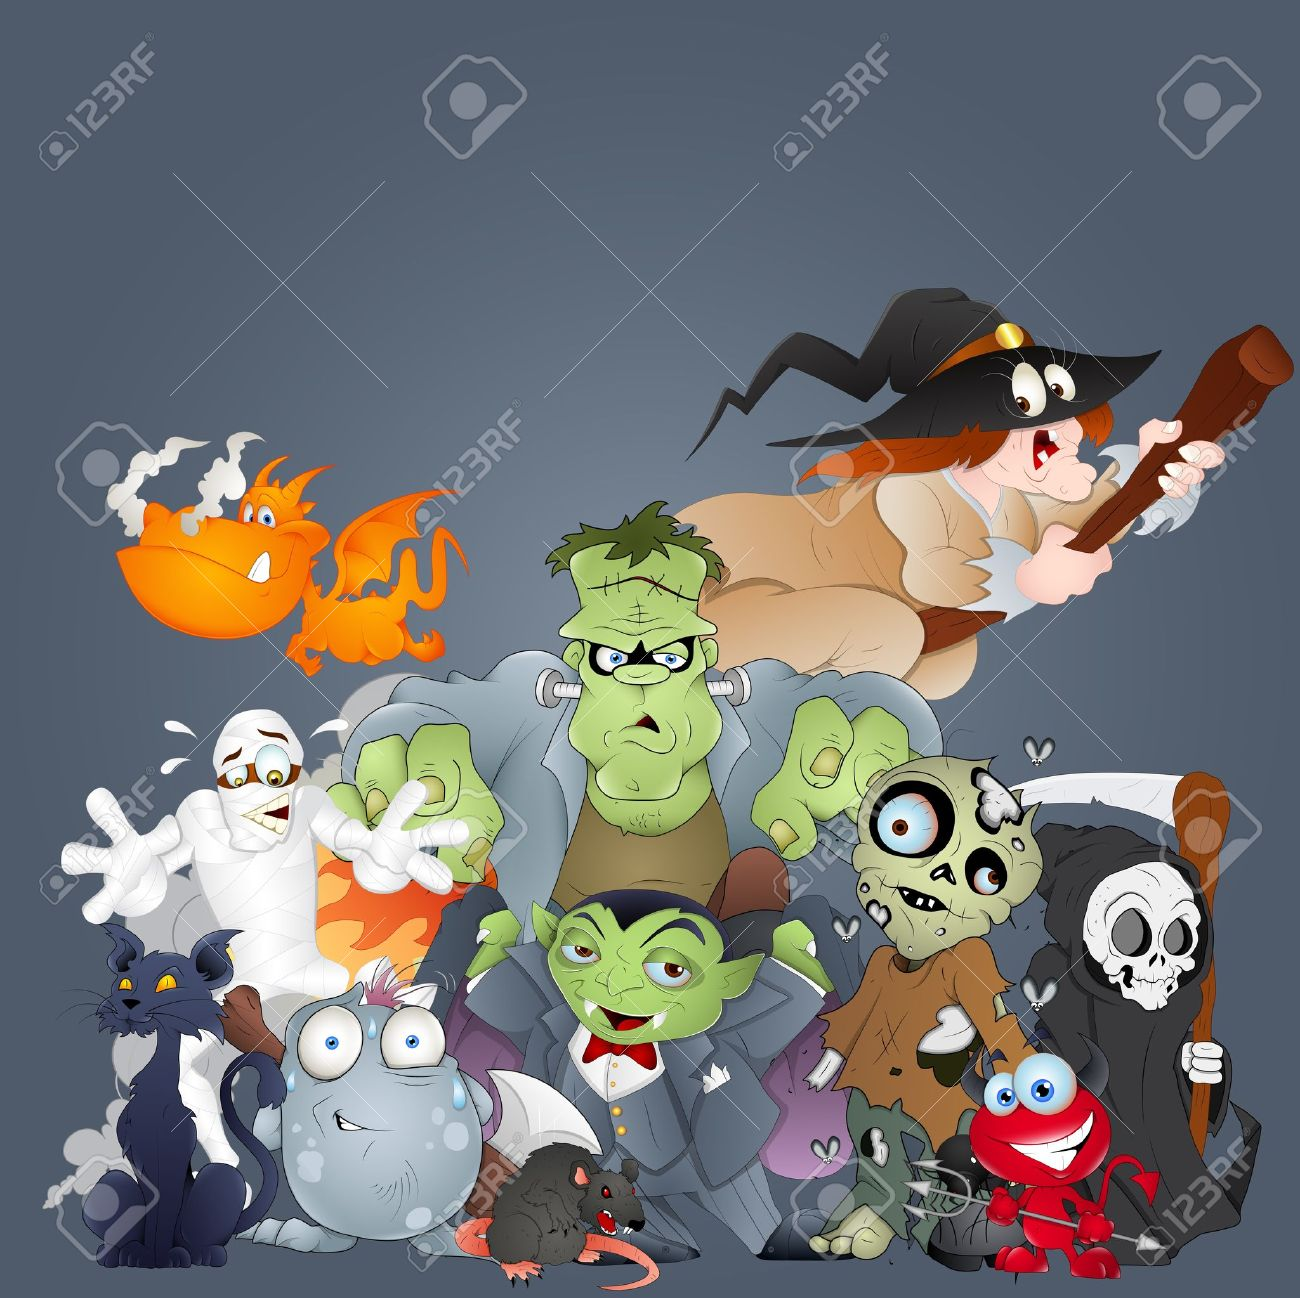 Collection of Monsters, Ghosts, Witches and More Stock Vector - 15759654